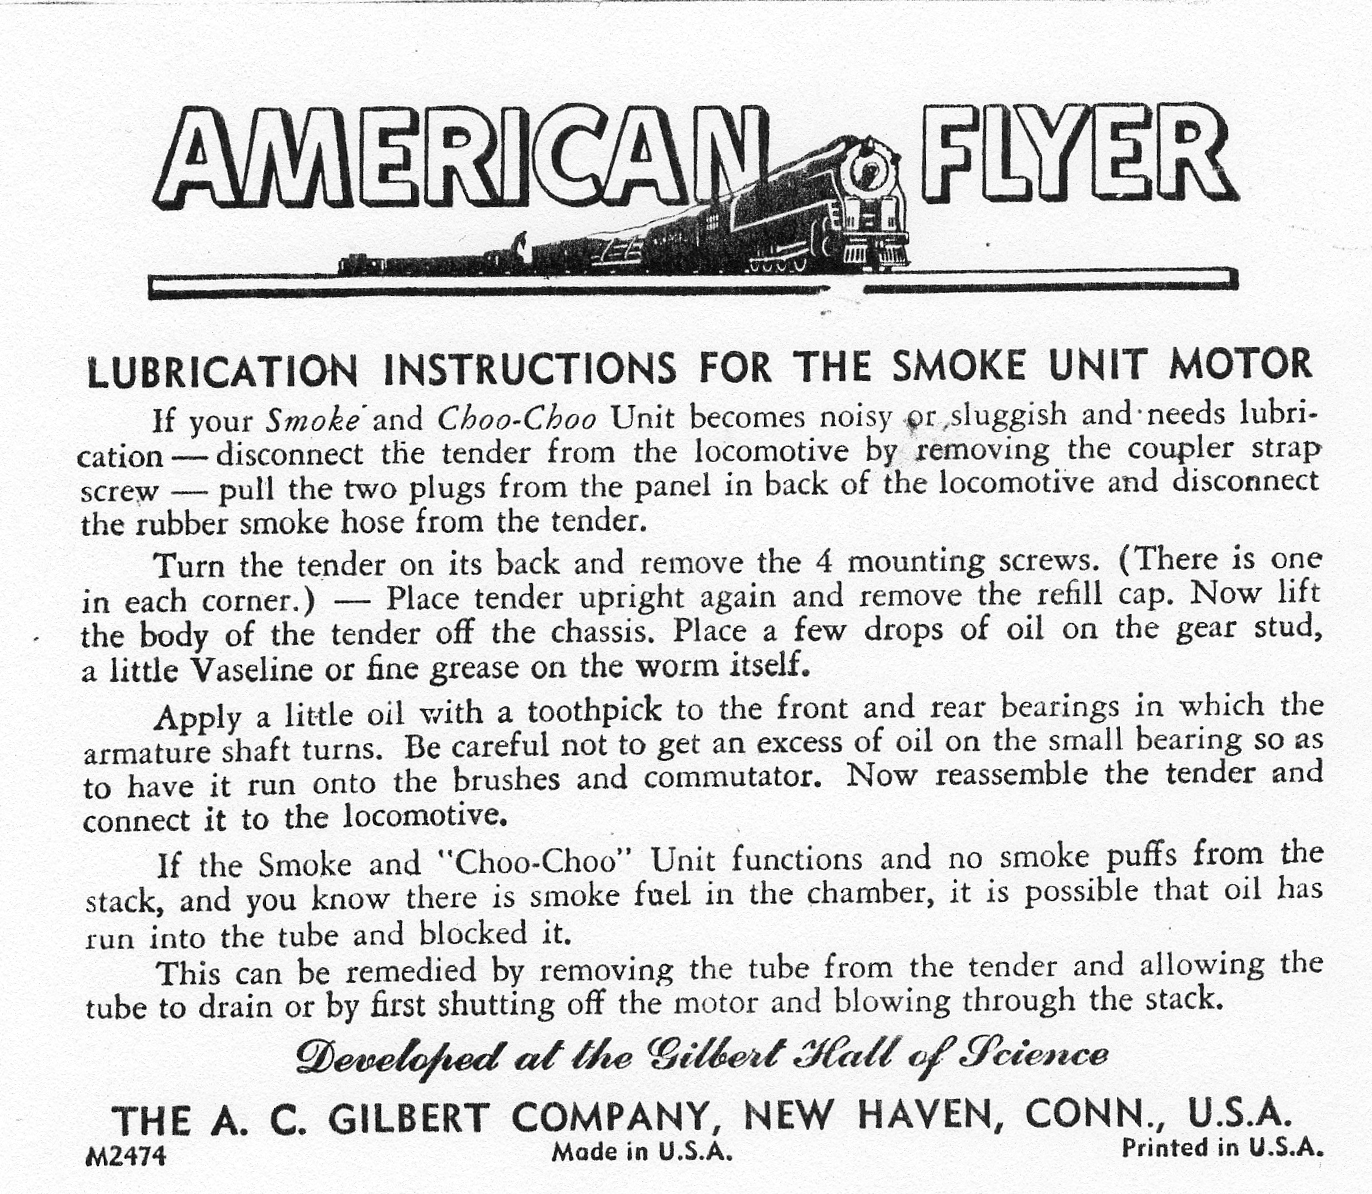 Lubrication Instructions for the Smoke Unit Motor